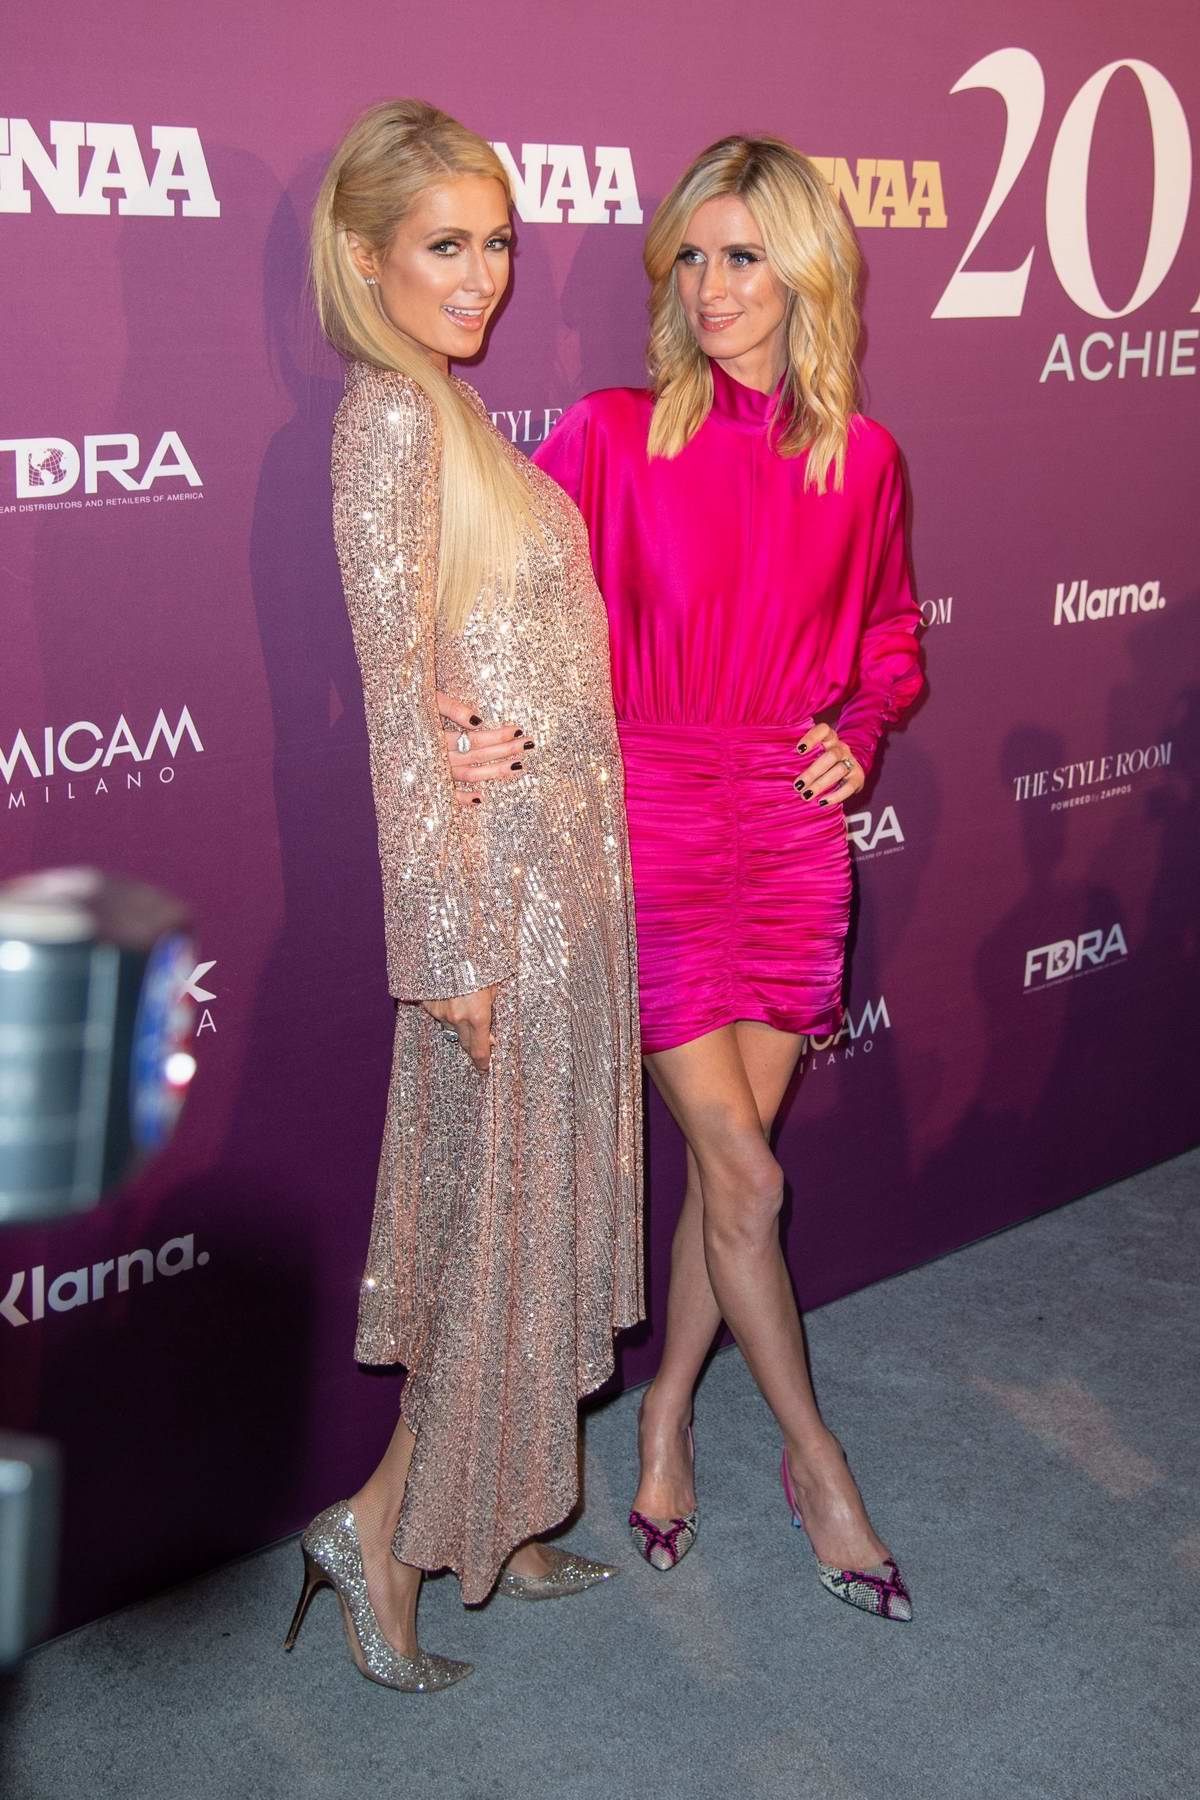 Paris and Nicky Hilton attend the 2019 Footwear News Achievement Awards at the IAC Building in New York City